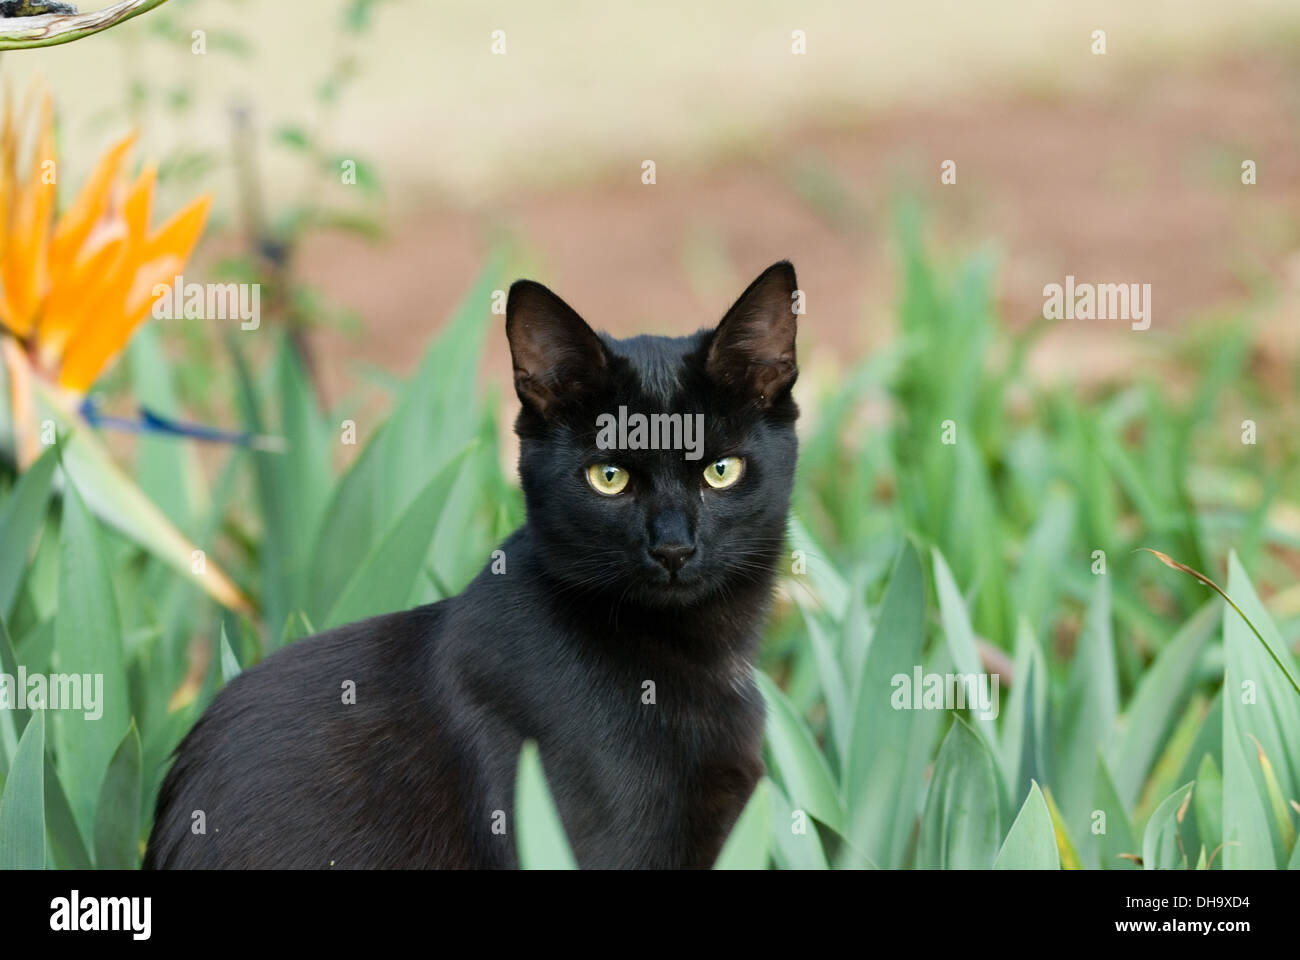 A beautiful 6 month old black cat rescued from a shelter in South Africa the outdoors looking at camera. - Stock Image